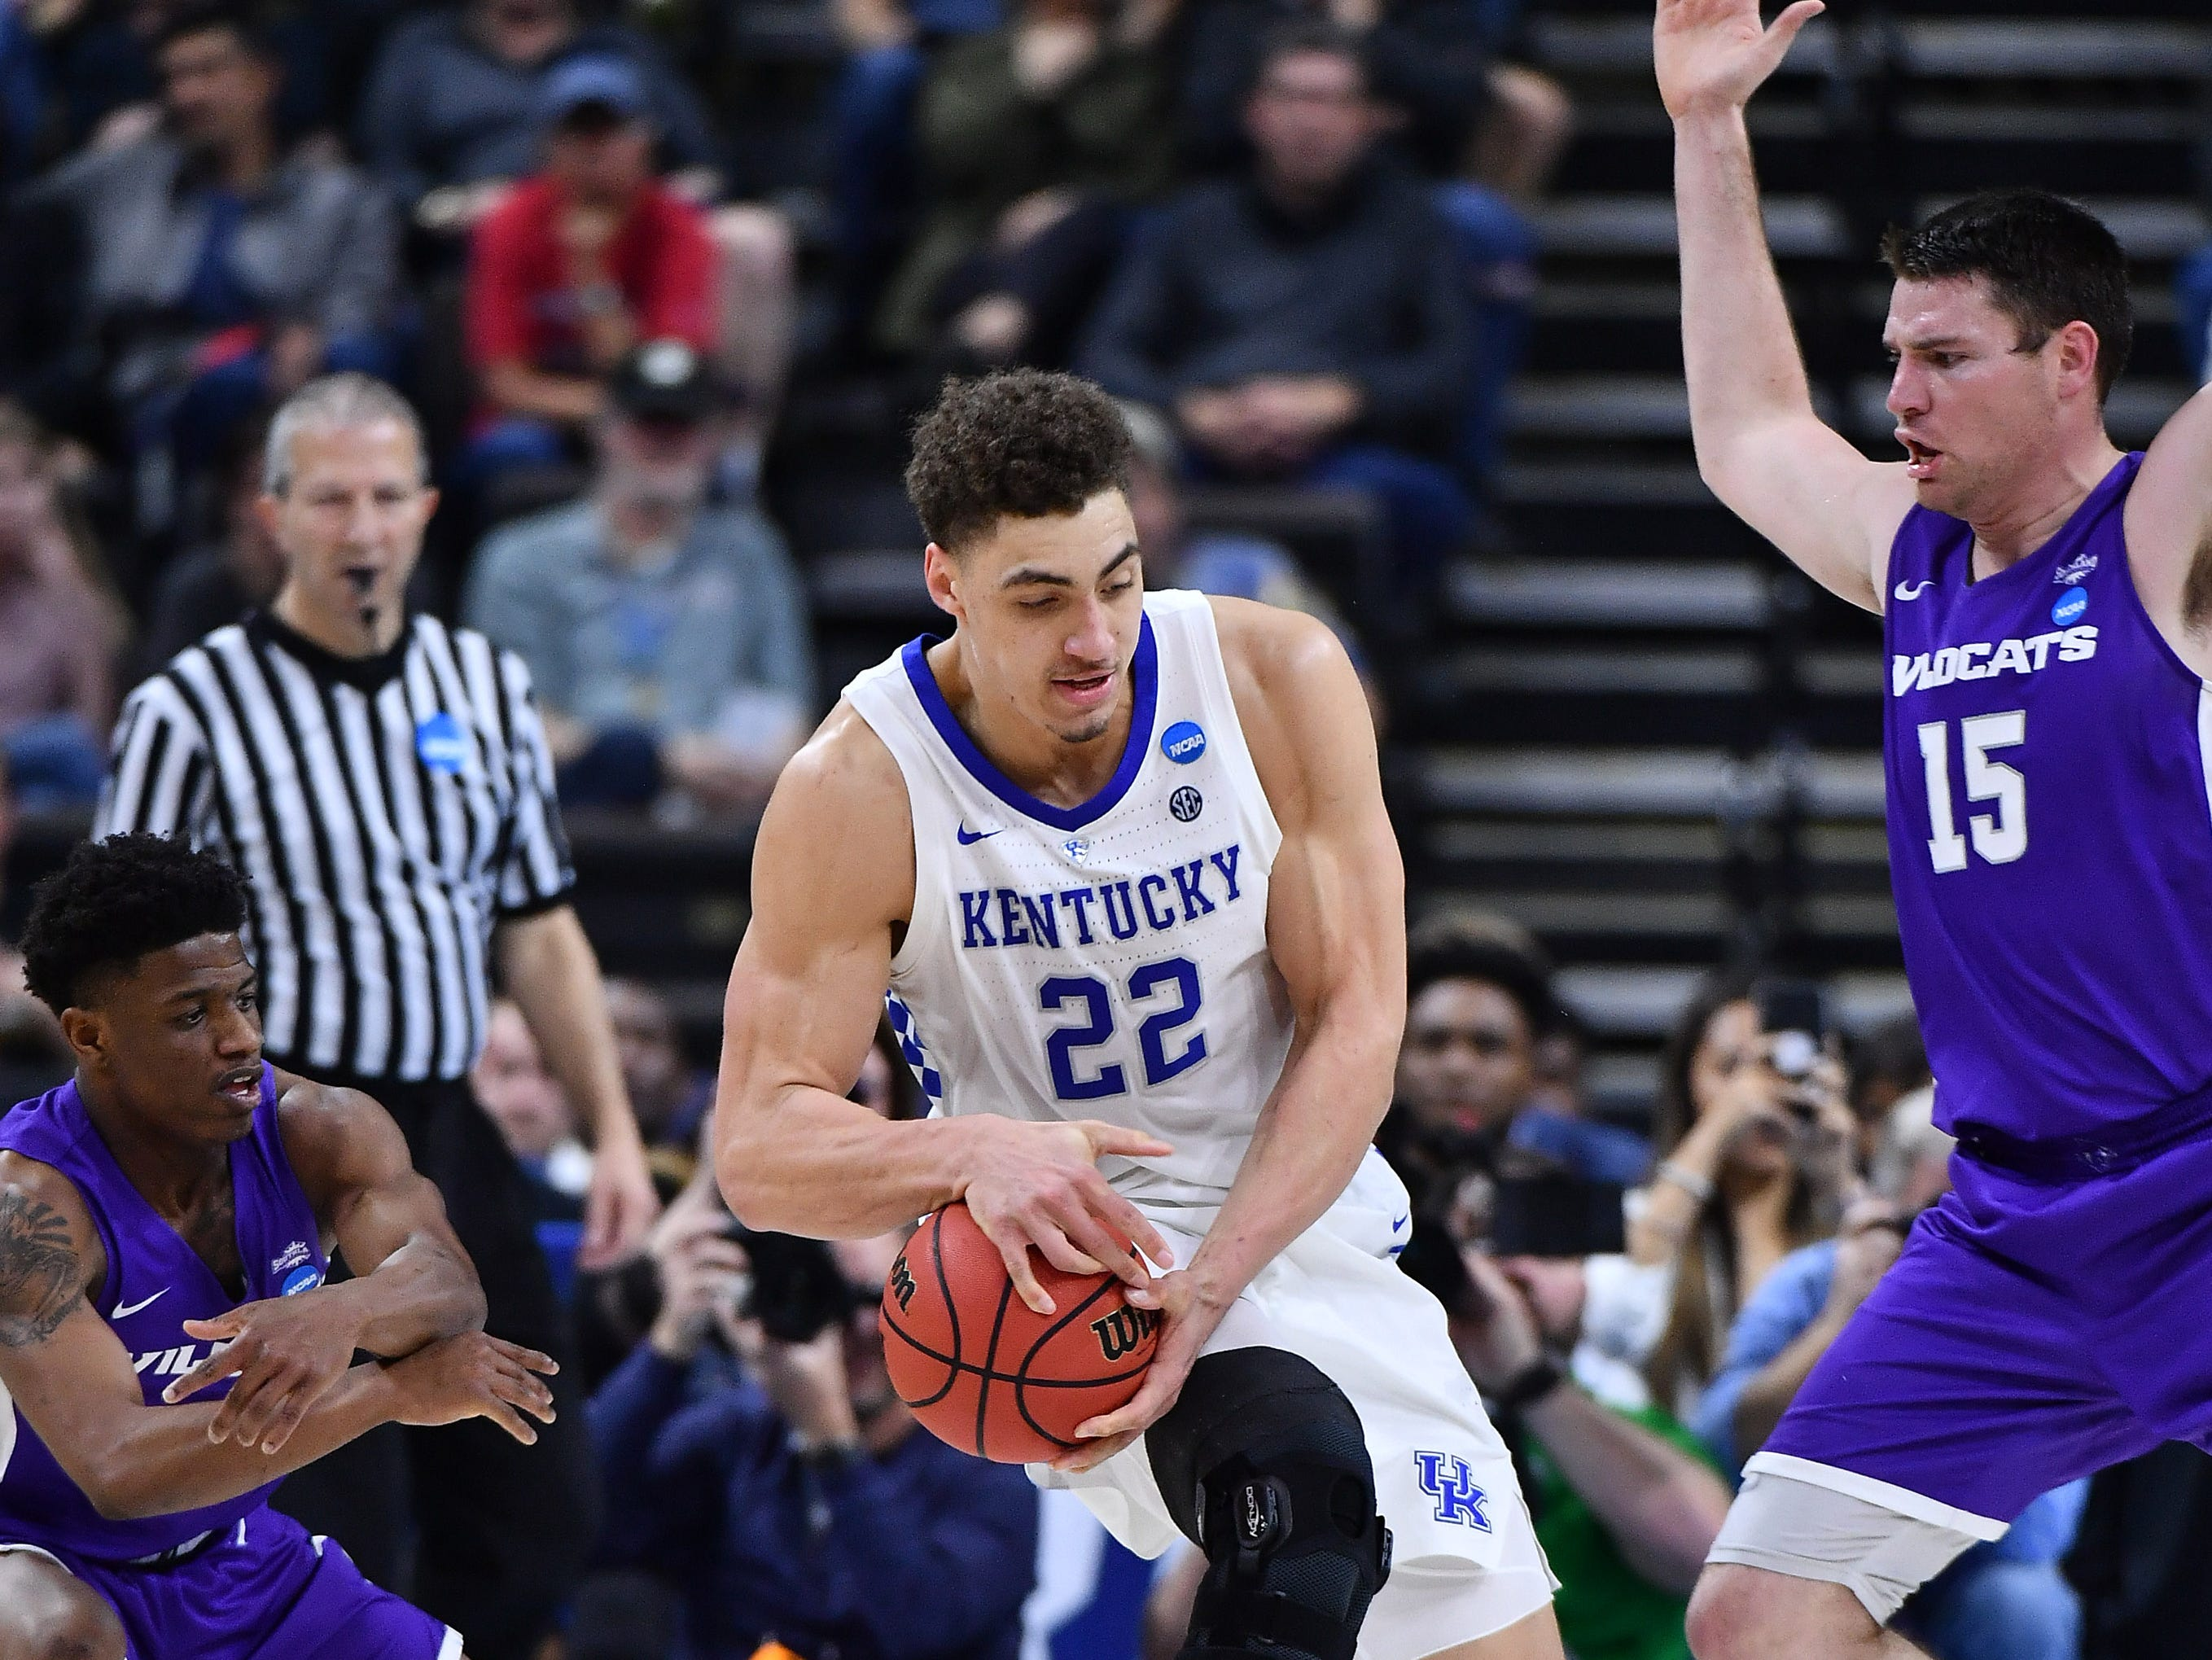 Mar 21, 2019; Jacksonville, FL, USA; Kentucky Wildcats forward Reid Travis (22) controls the ball between Abilene Christian Wildcats guard Damien Daniels (4) and Abilene Christian Wildcats forward Hayden Farquhar (15) during the first half in the first round of the 2019 NCAA Tournament at Jacksonville Veterans Memorial Arena. Mandatory Credit: John David Mercer-USA TODAY Sports